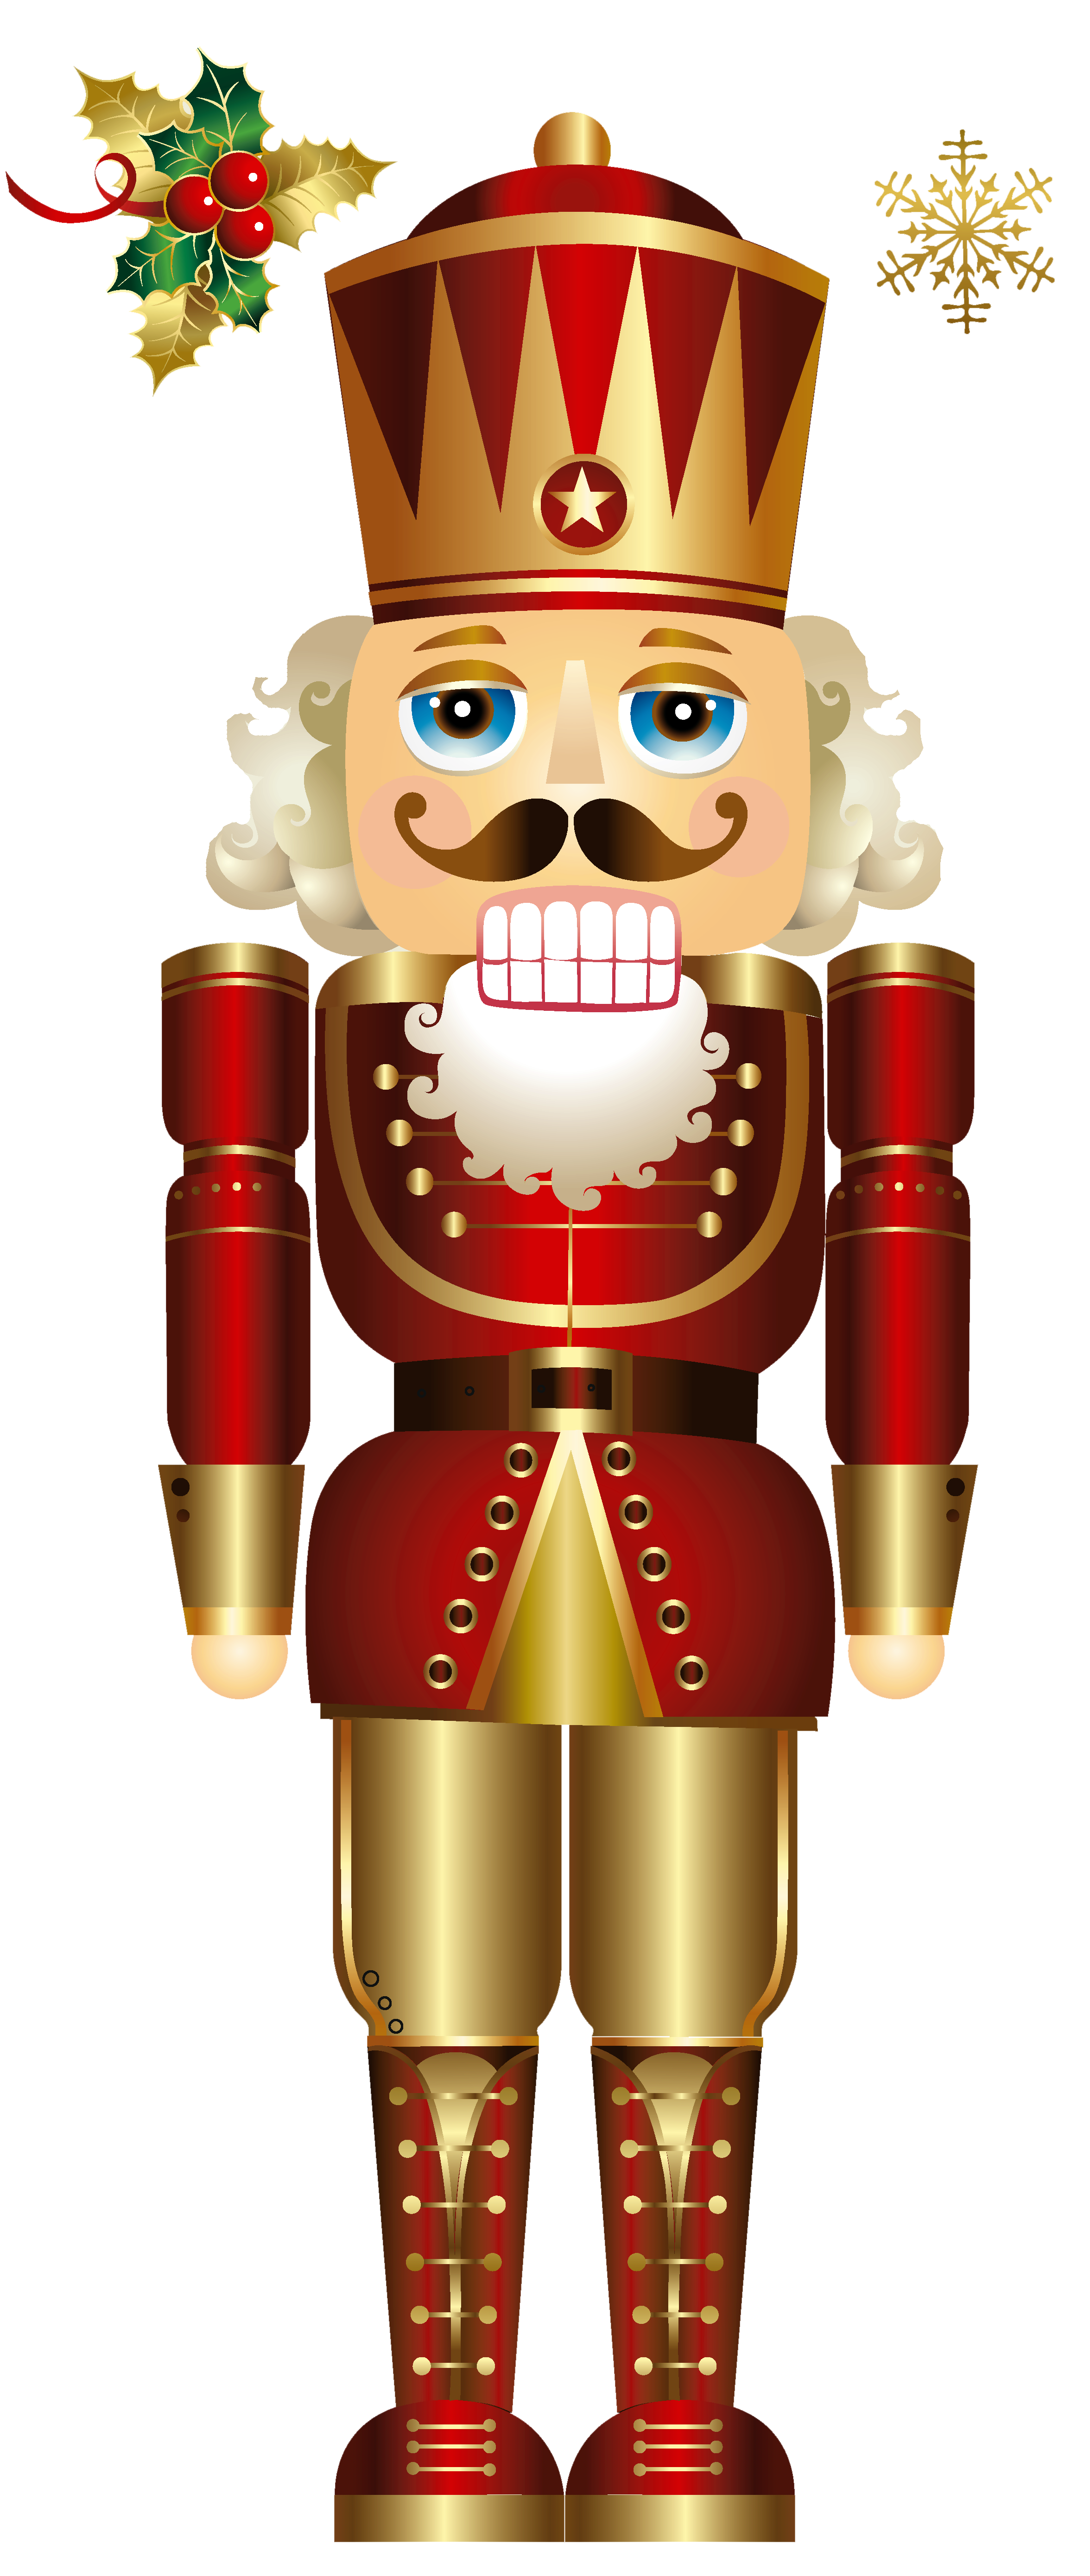 Peanut clipart face. Christmas nutcracker png gallery